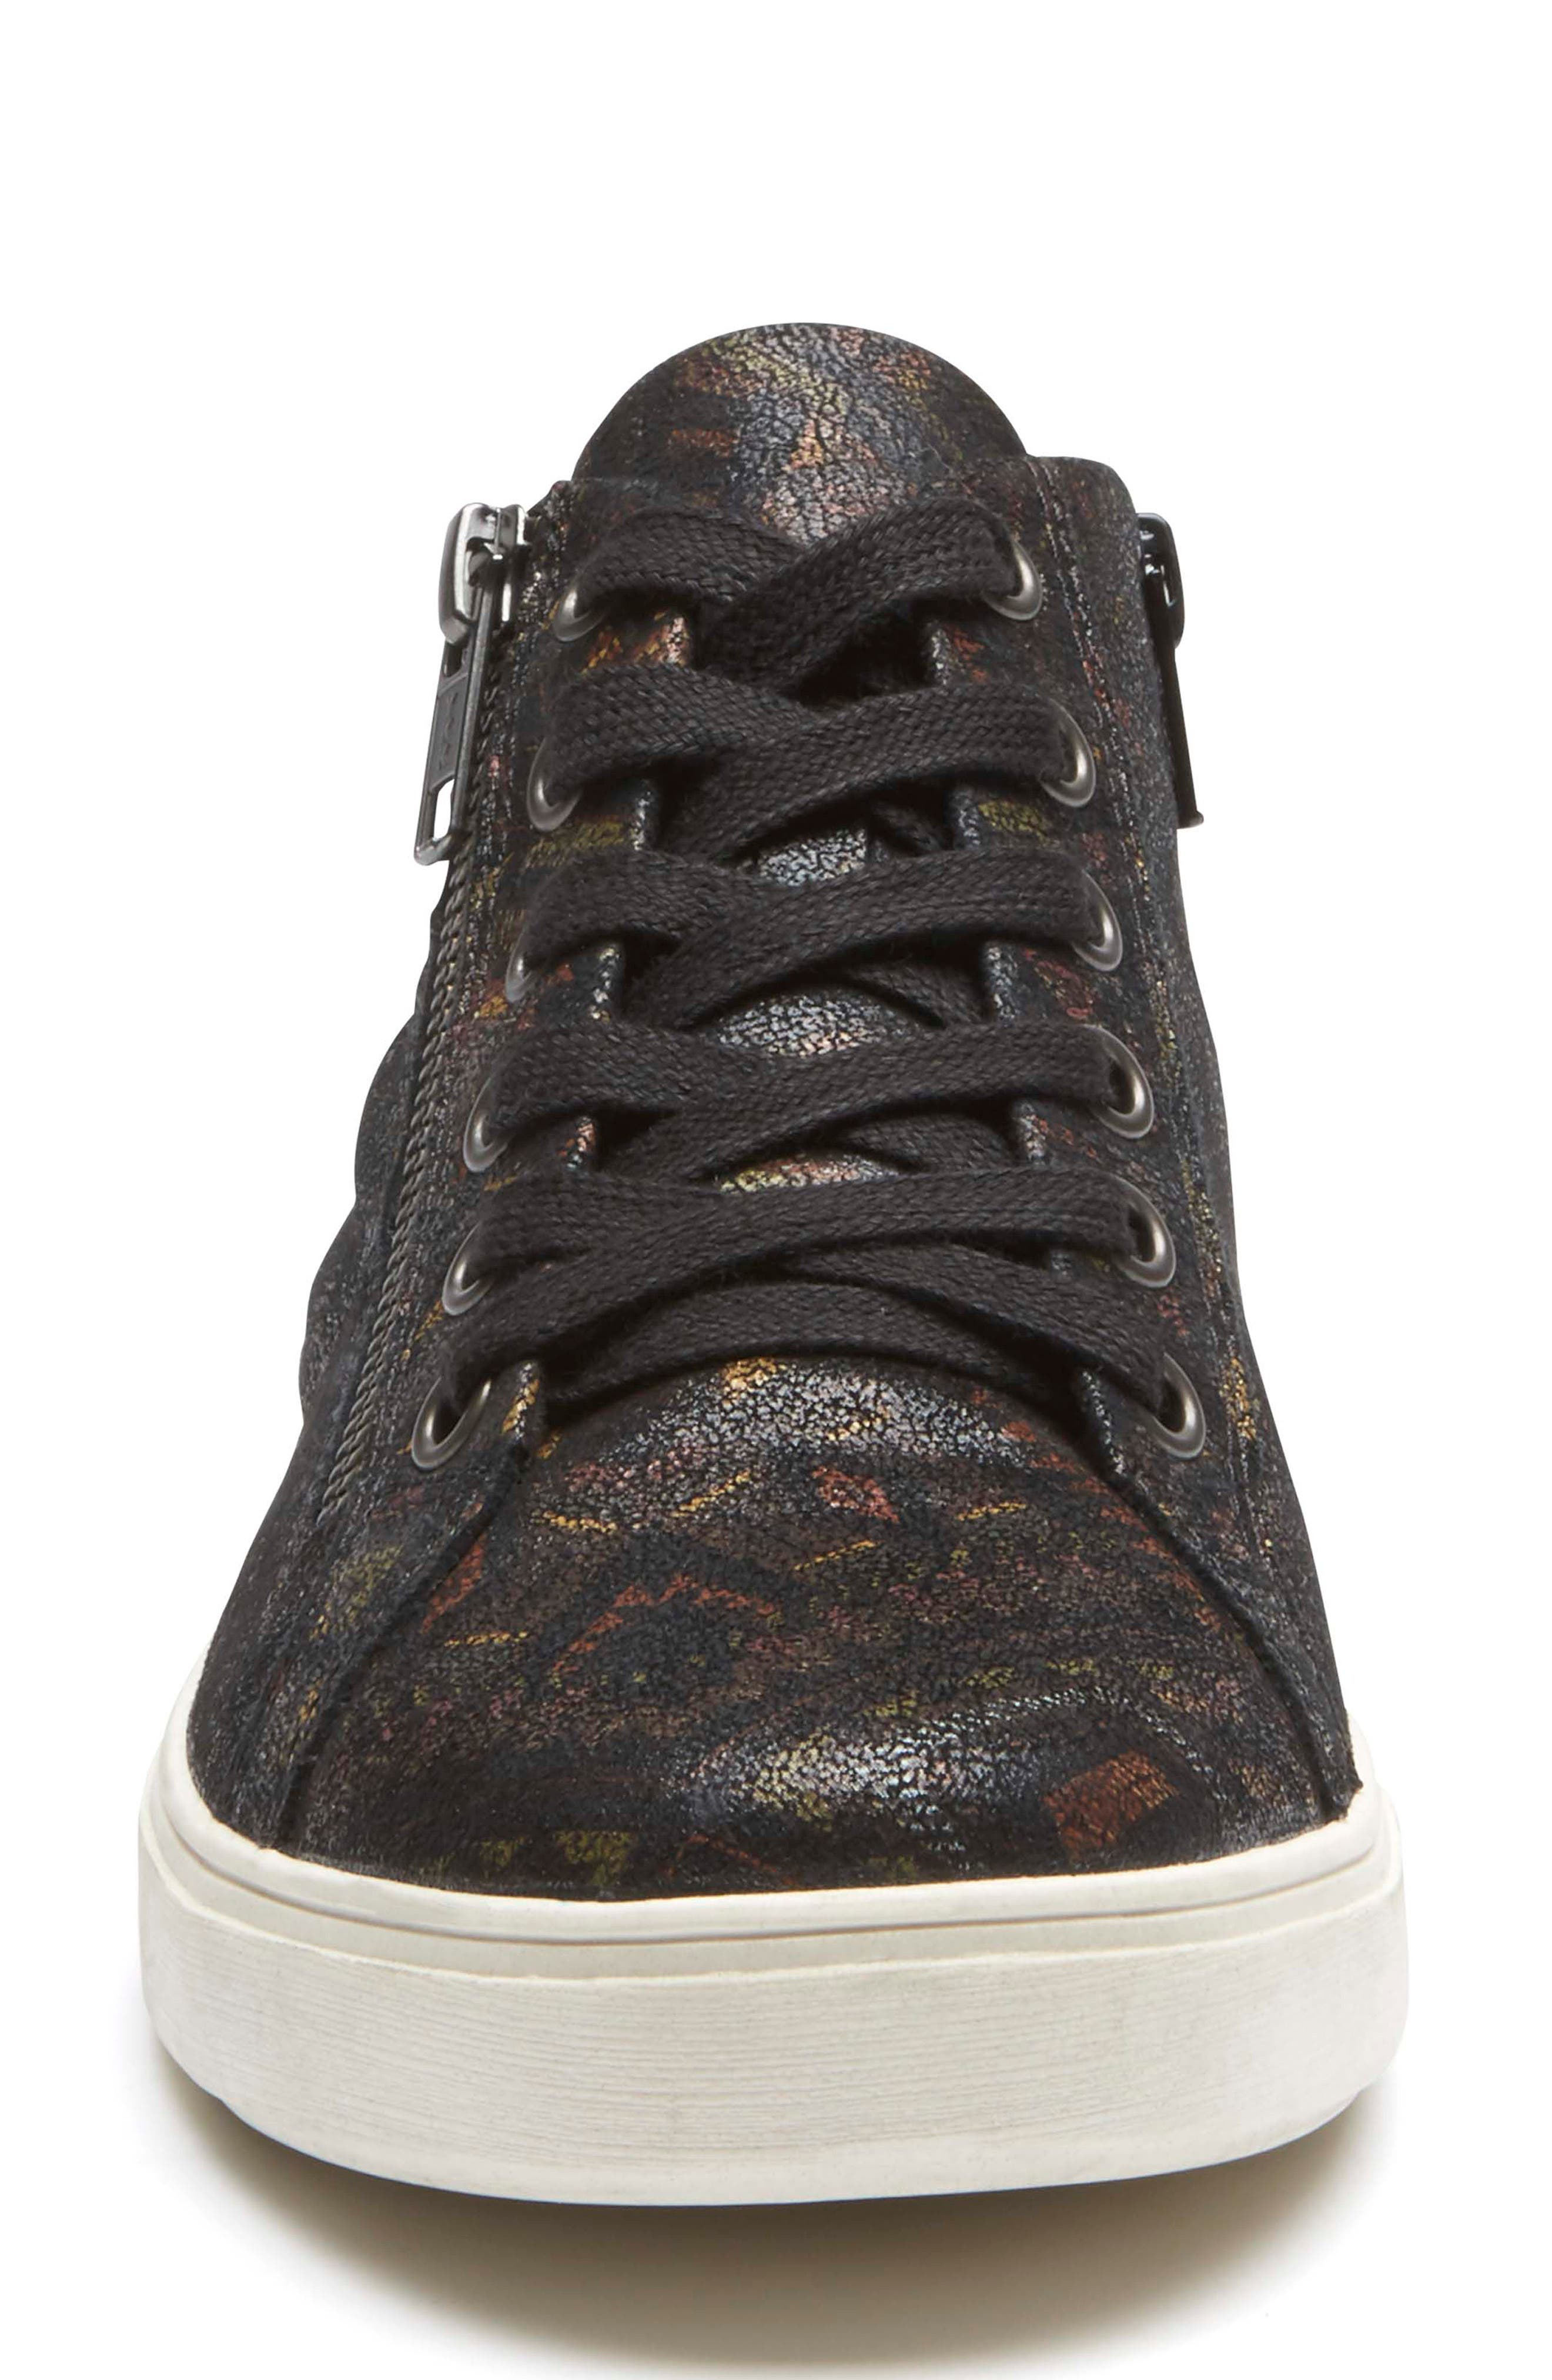 Willa High Top Sneaker,                             Alternate thumbnail 4, color,                             NOVELTY PRINT LEATHER